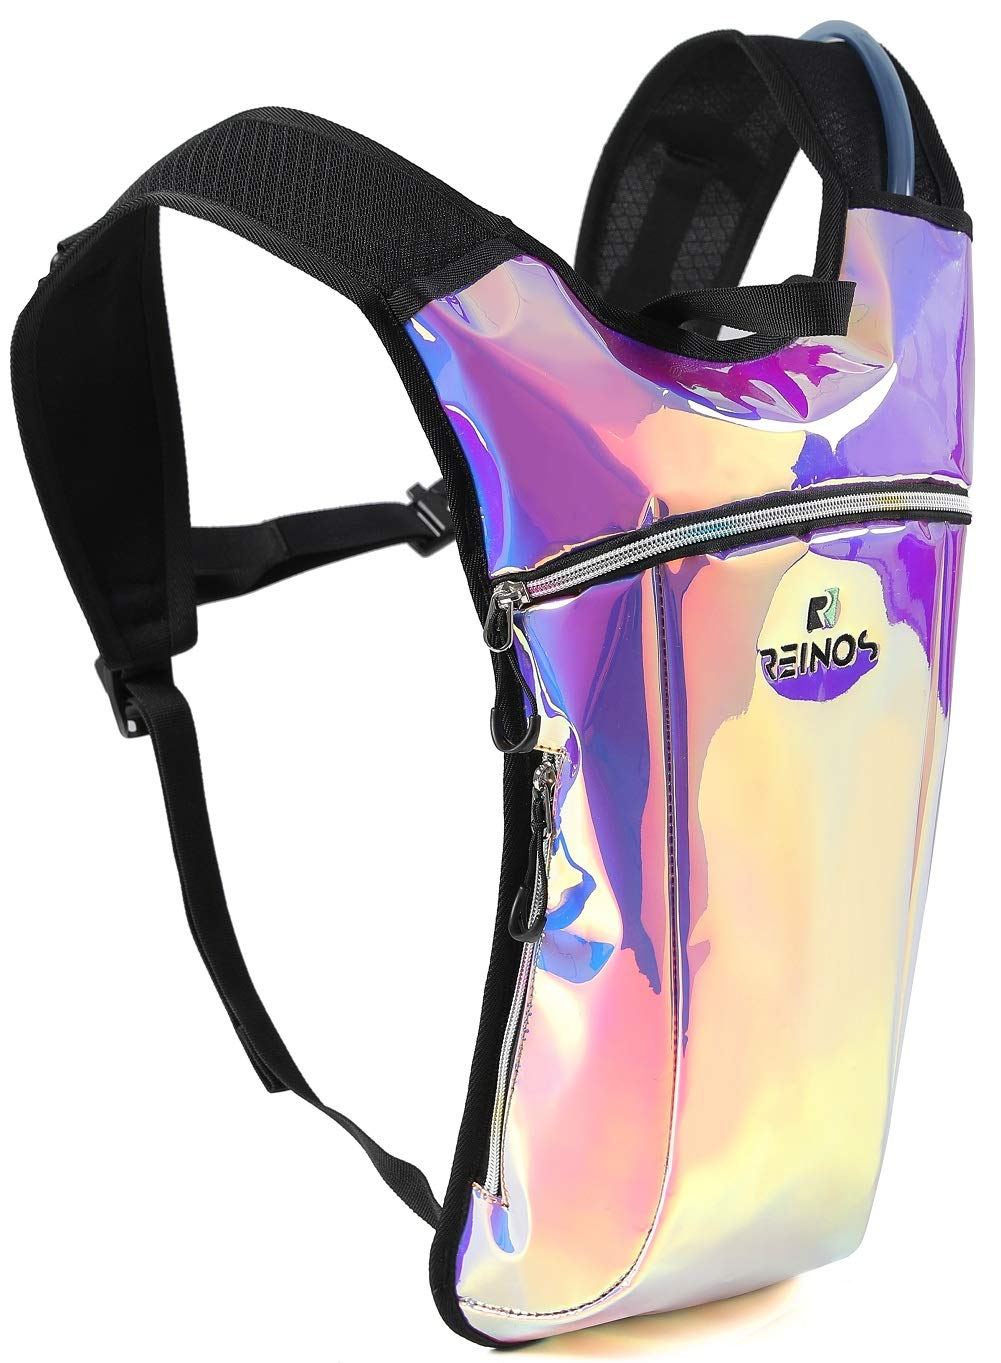 REINOS Hydration Backpack - Light Water Pack - 2L Water Bladder Included for Running, Hiking, Biking, Festivals, Raves (Holographic - Purple) by REINOS